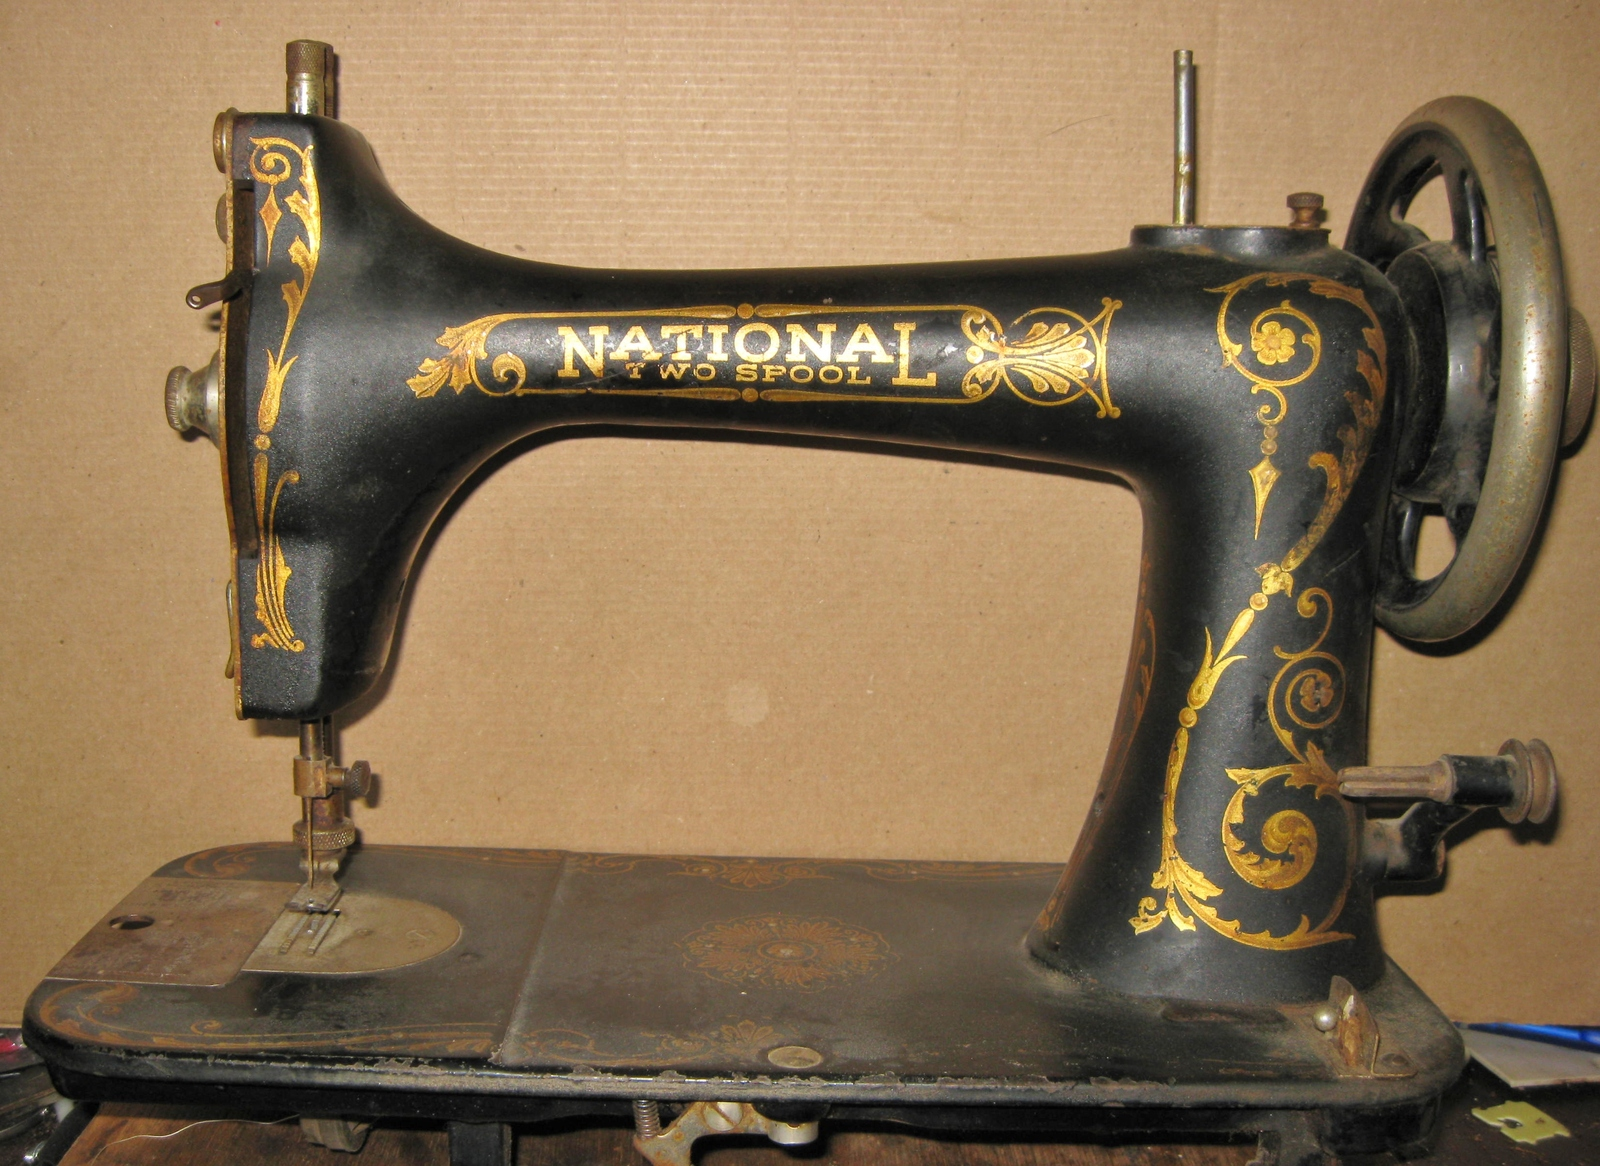 national two spool sewing machine